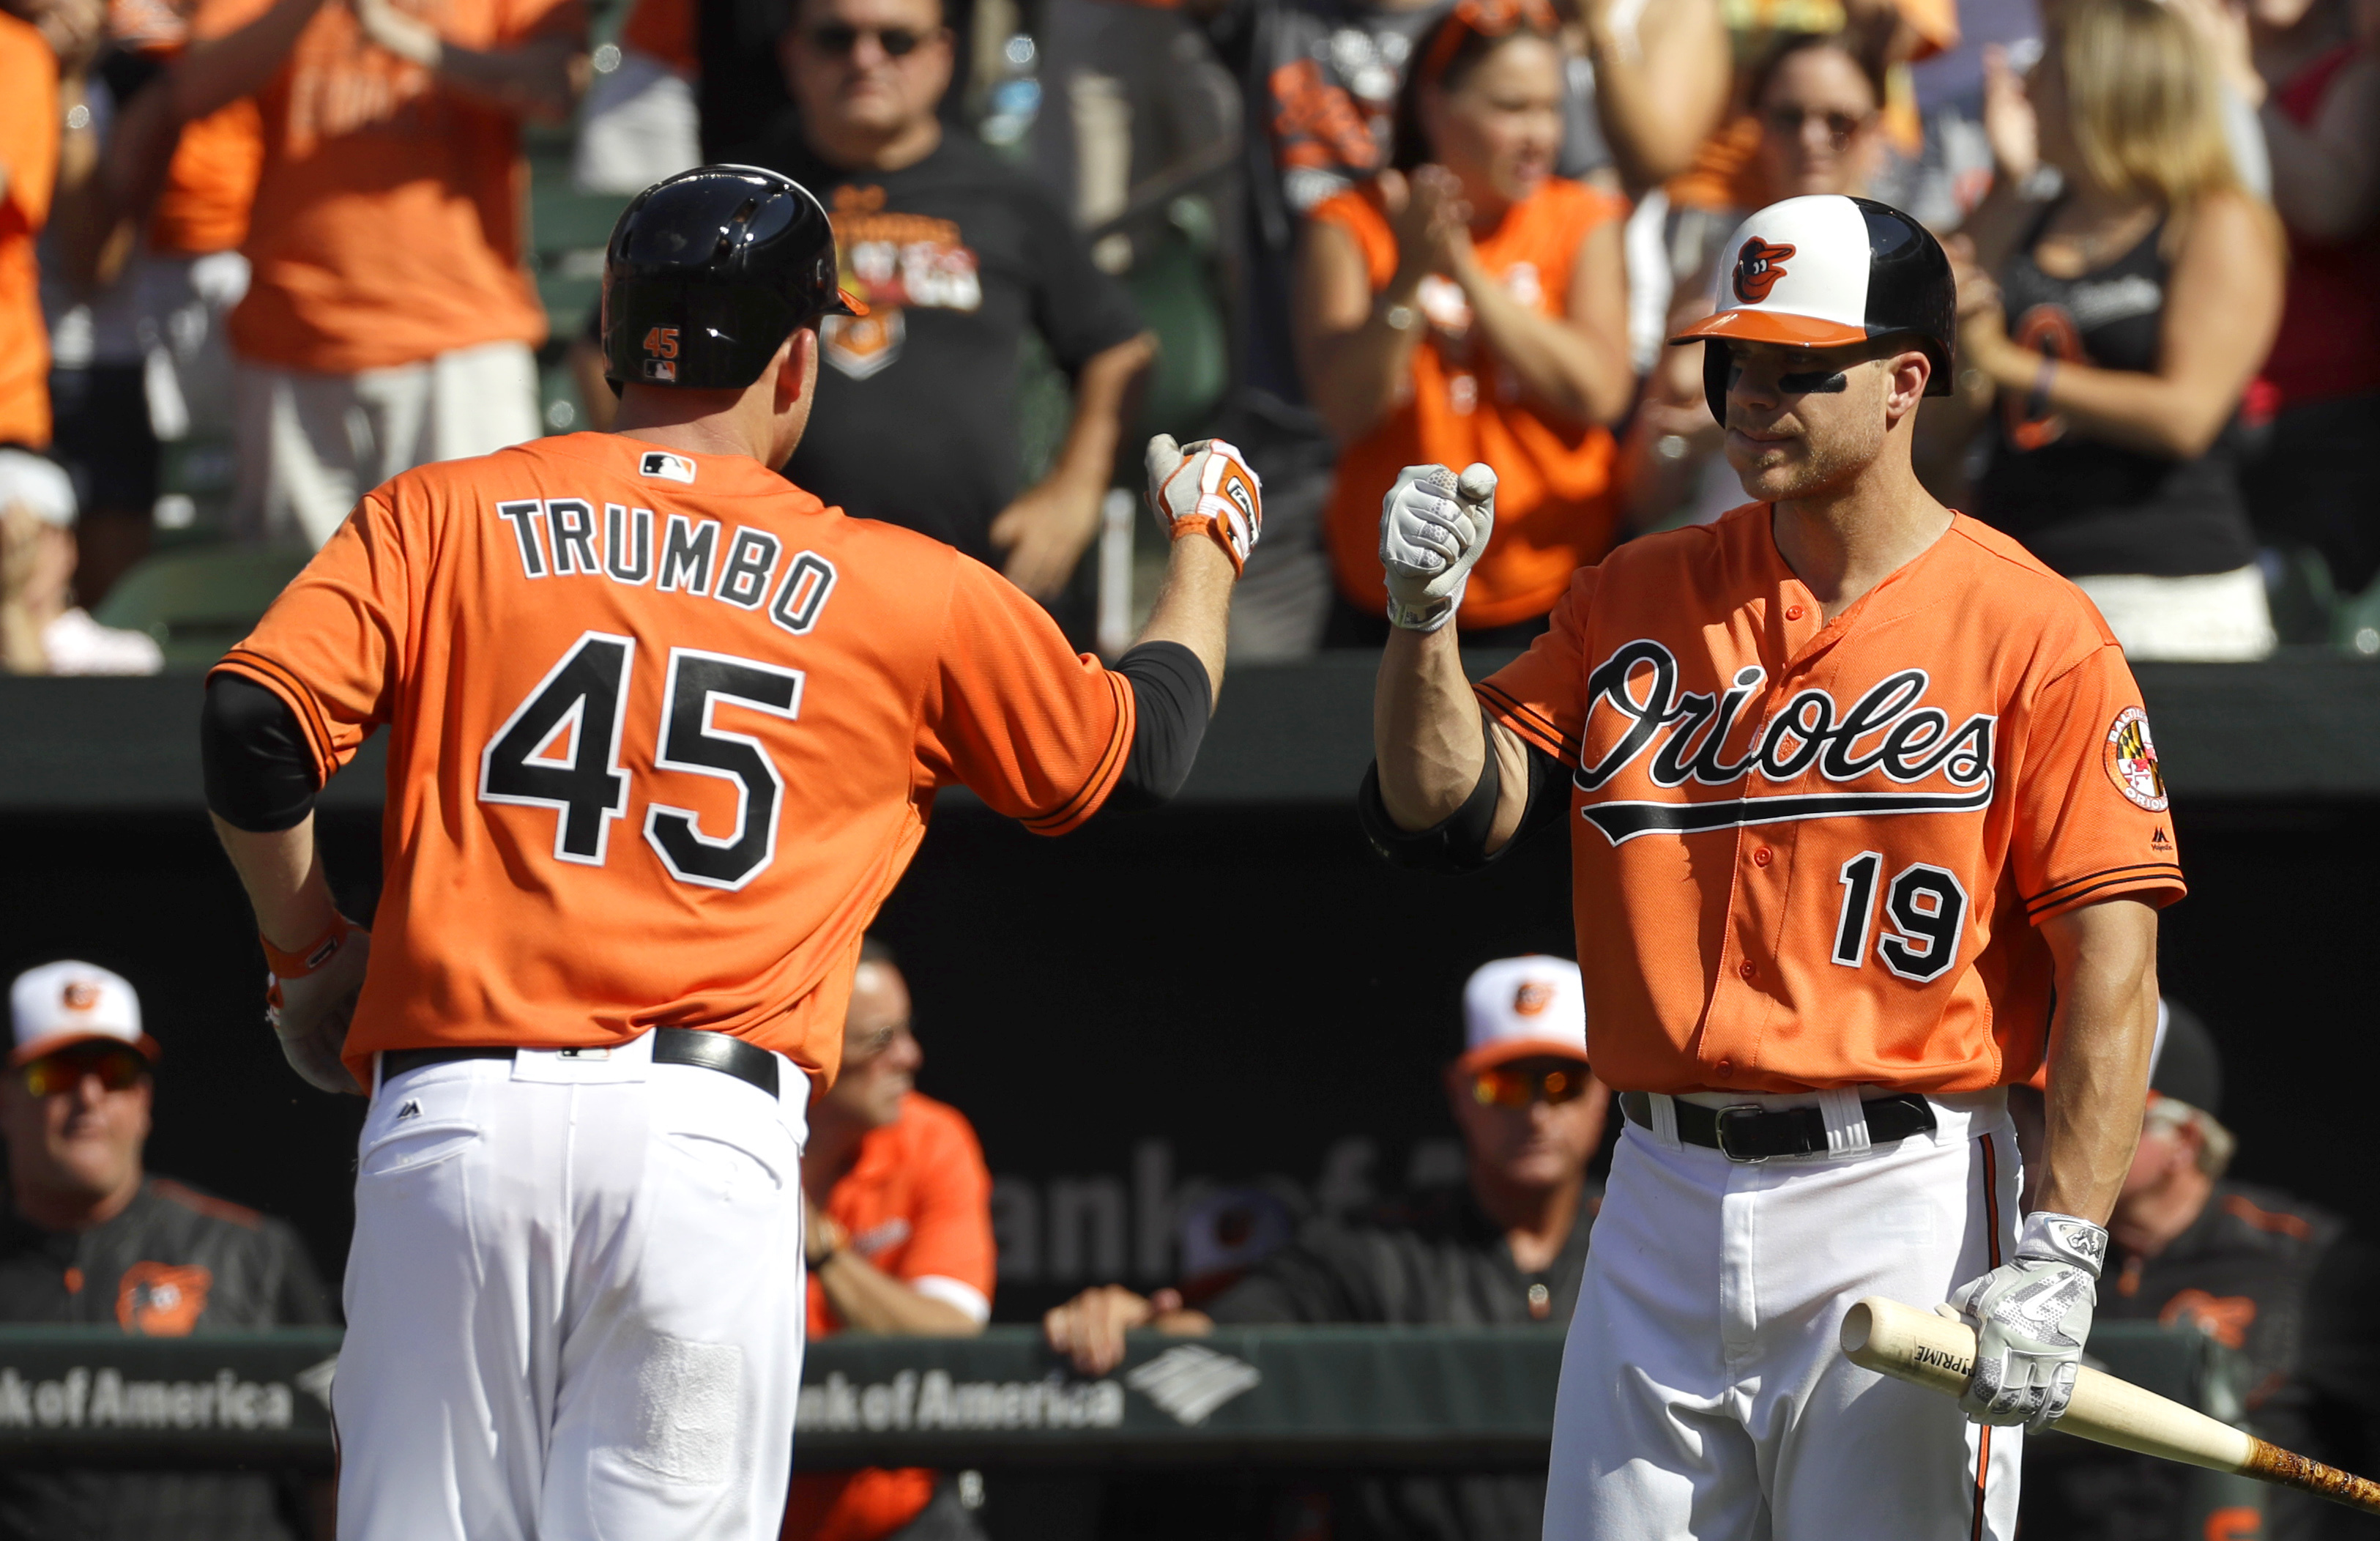 Baltimore Orioles' Mark Trumbo (45) fist-bumps teammate Chris Davis after hitting a solo home run in the second inning of a baseball game against the Los Angeles Angels in Baltimore, Saturday, July 9, 2016. (AP Photo/Patrick Semansky)